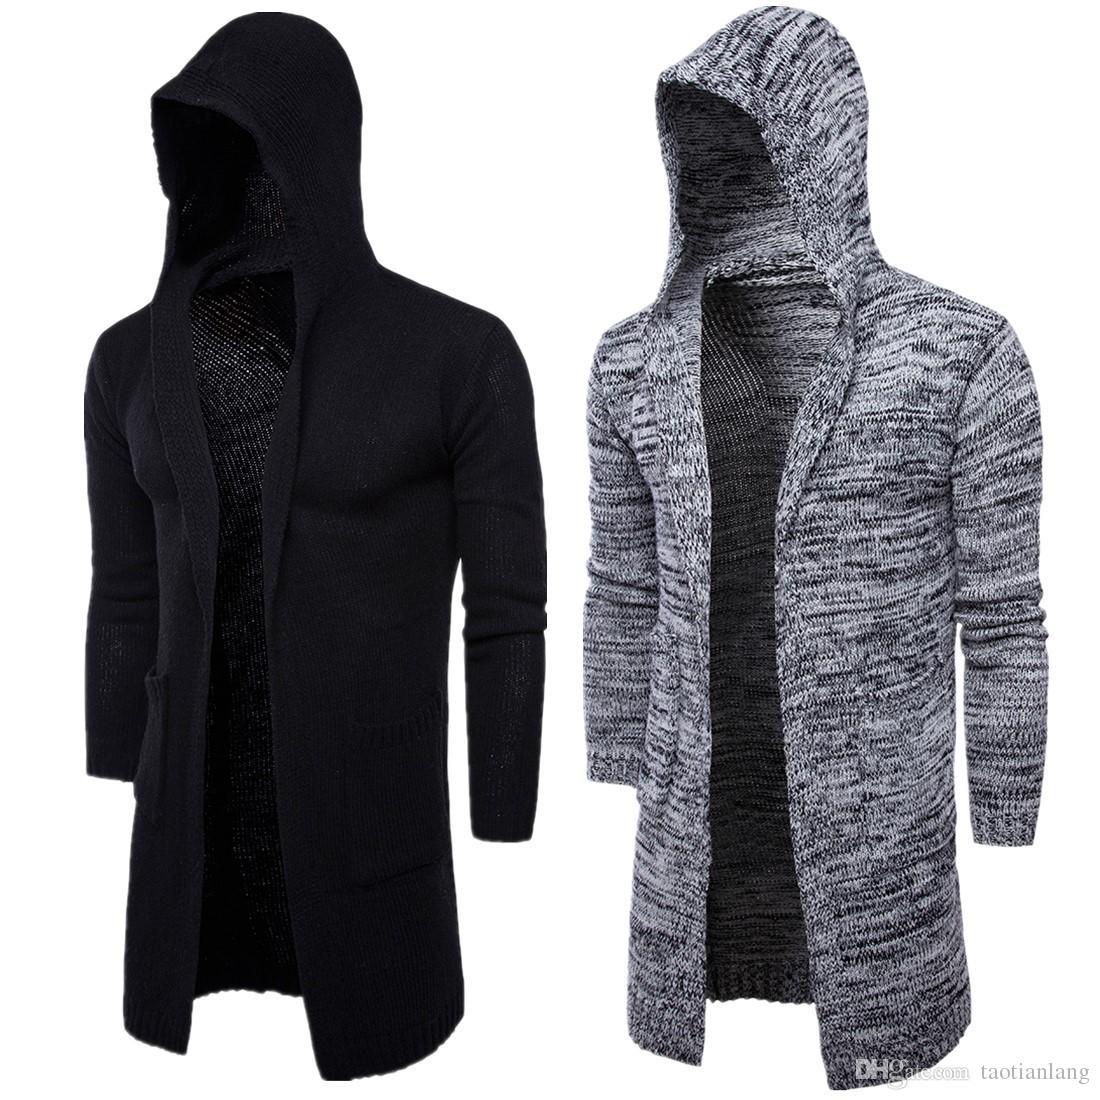 Autumn Winter Loose Long Mens Cardigans Sweaters New Fashion Thick plus Size Jumpers Mens Hooded Sueter Knit Sweater Sudaderas T170758